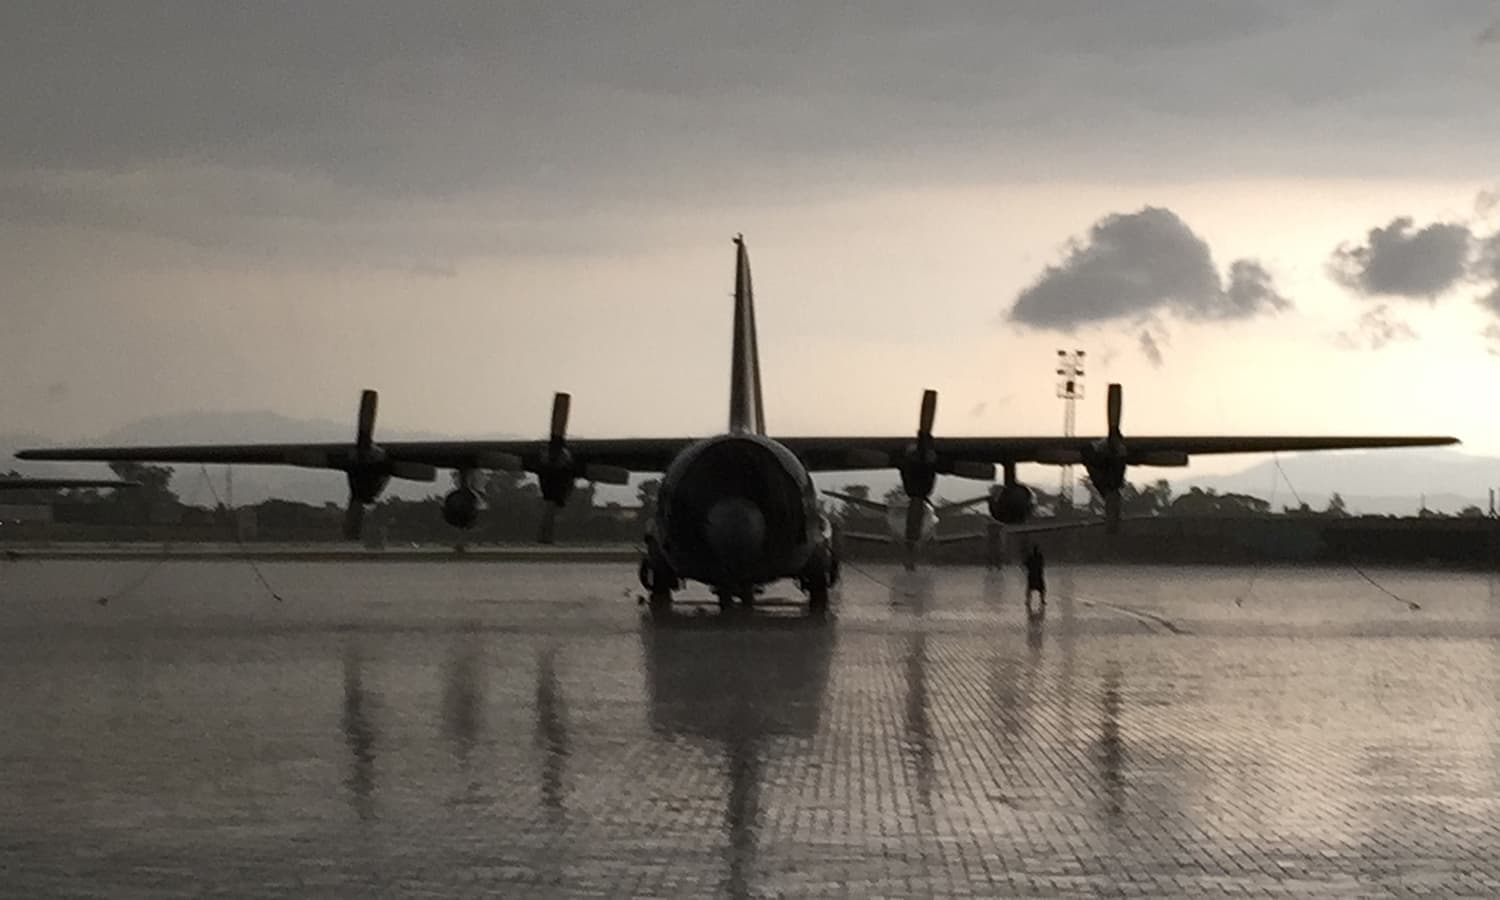 The journey begins; after a 18-hour wait on the tarmac of the Nur Khan Airbase, the Pakistan Air Force C-130E Hercules, loaded with relief supplies and a search and rescue team of the Army's 13th Engineers, takes off for Kathmandu.